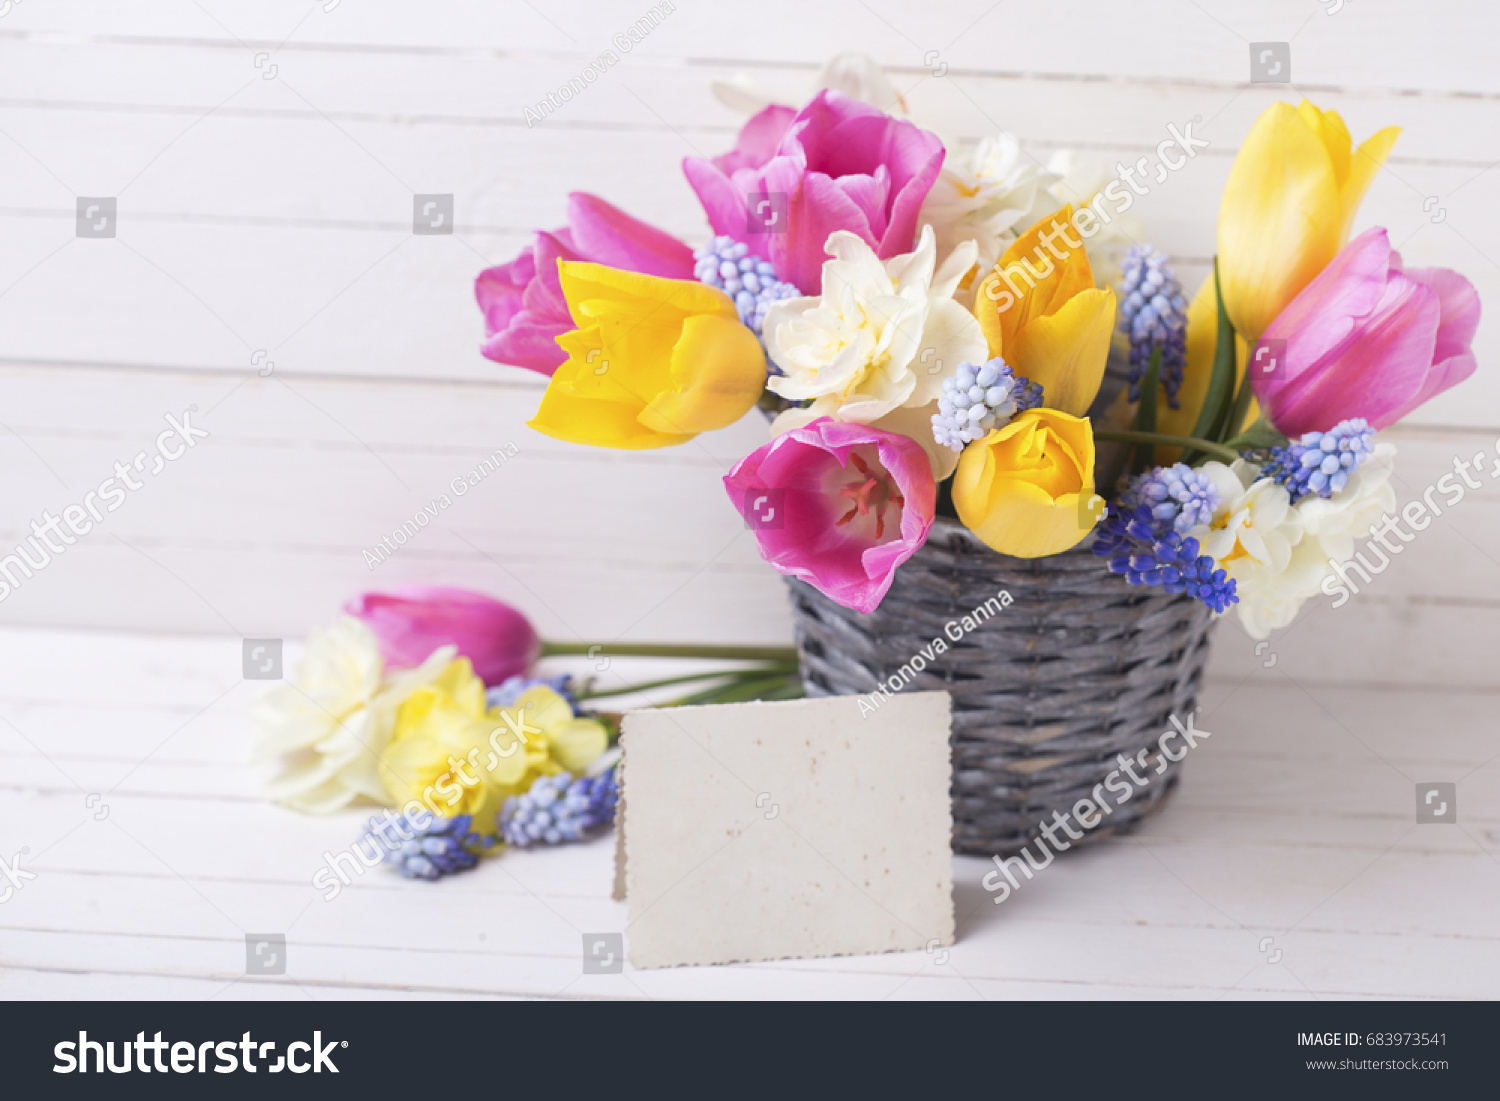 Bright Pink Yellow And White Spring Tulips And Daffodils Flowers In